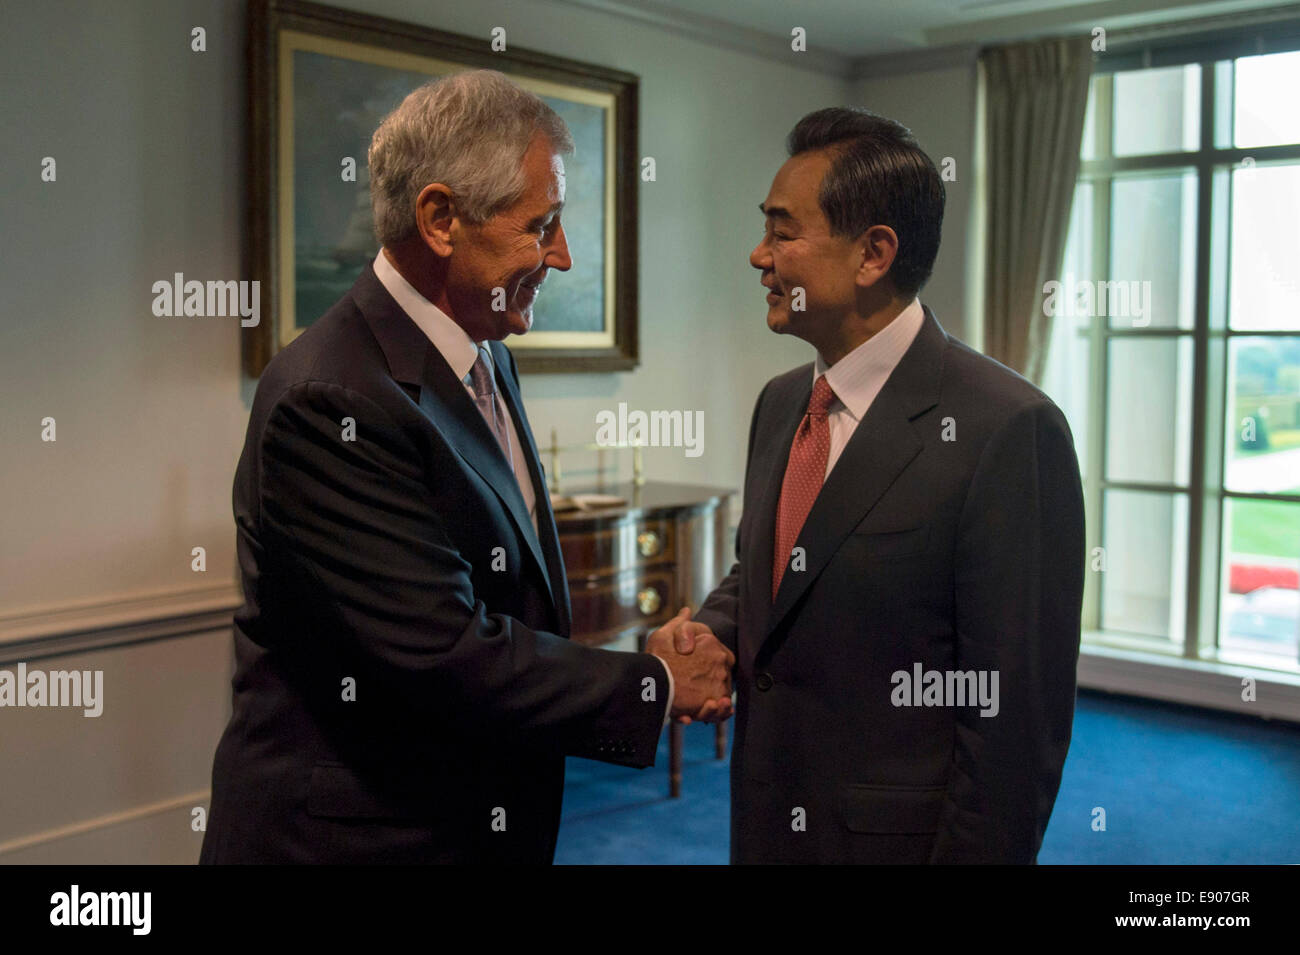 U.S. Secretary of Defense Chuck Hagel, left, welcomes Foreign Minister of the People's Republic of China Wang Yi Stock Photo